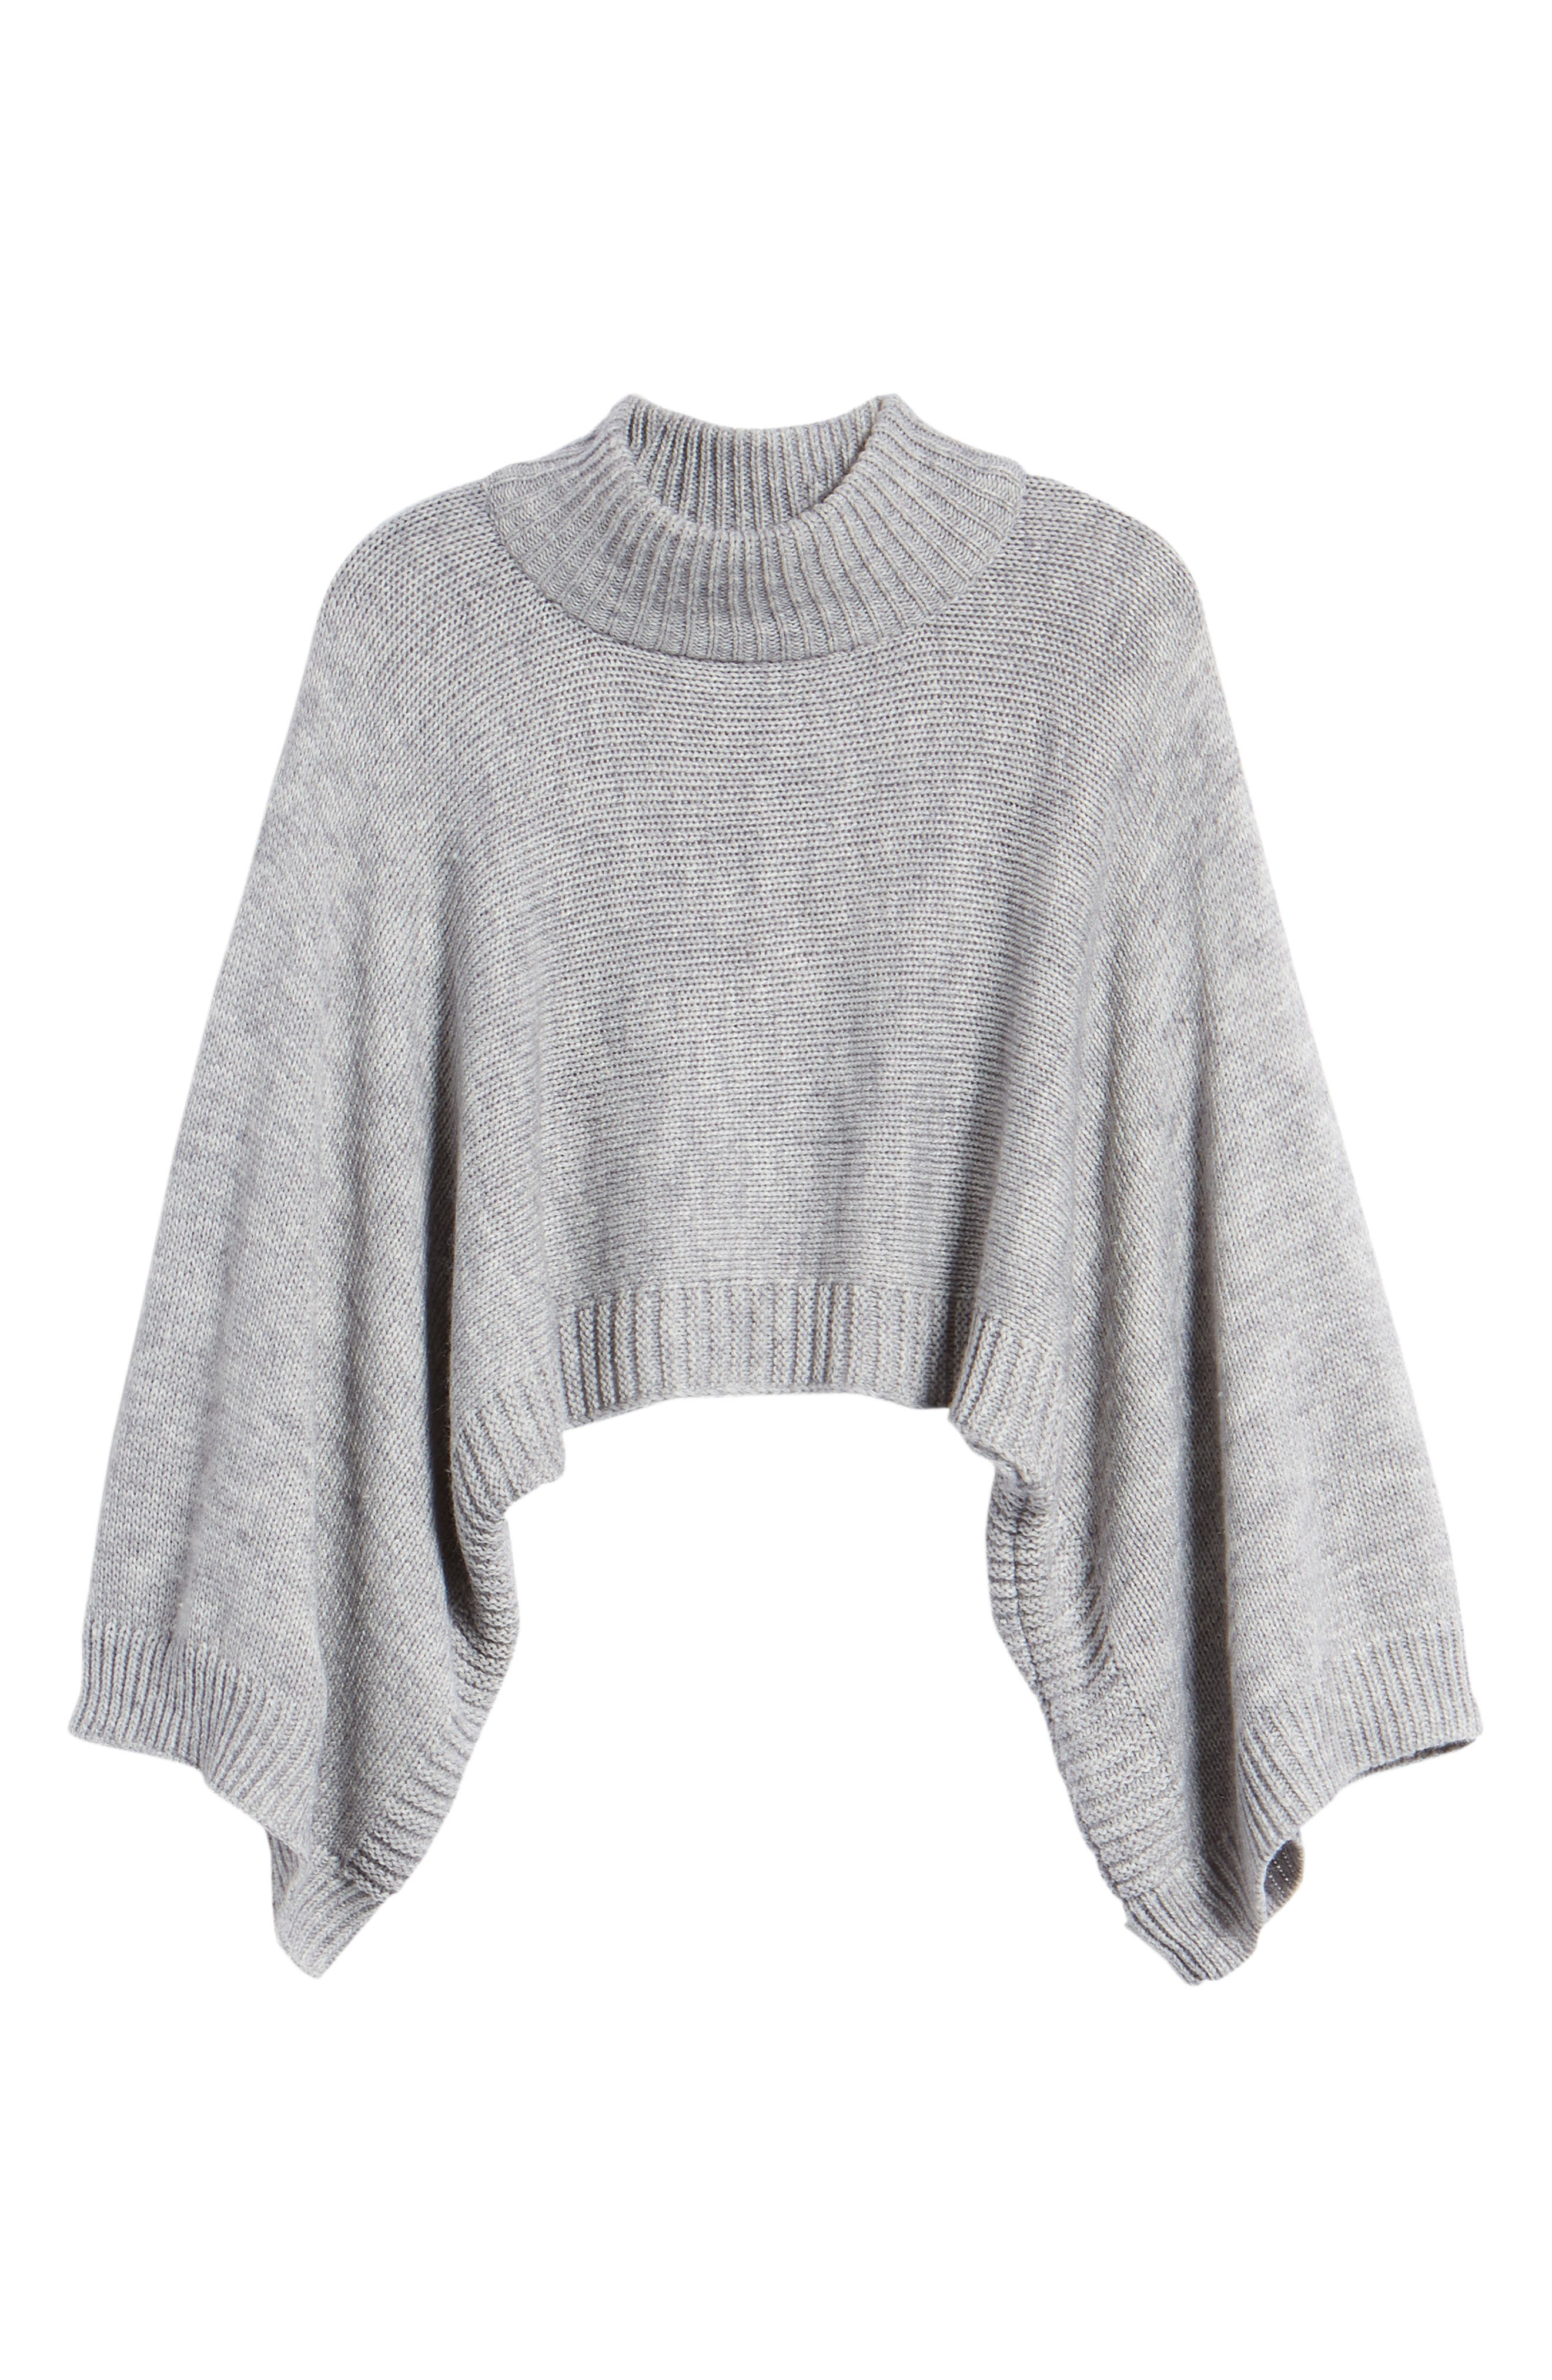 Bishop + Young Olivia Crop Sweater,                             Alternate thumbnail 7, color,                             Grey